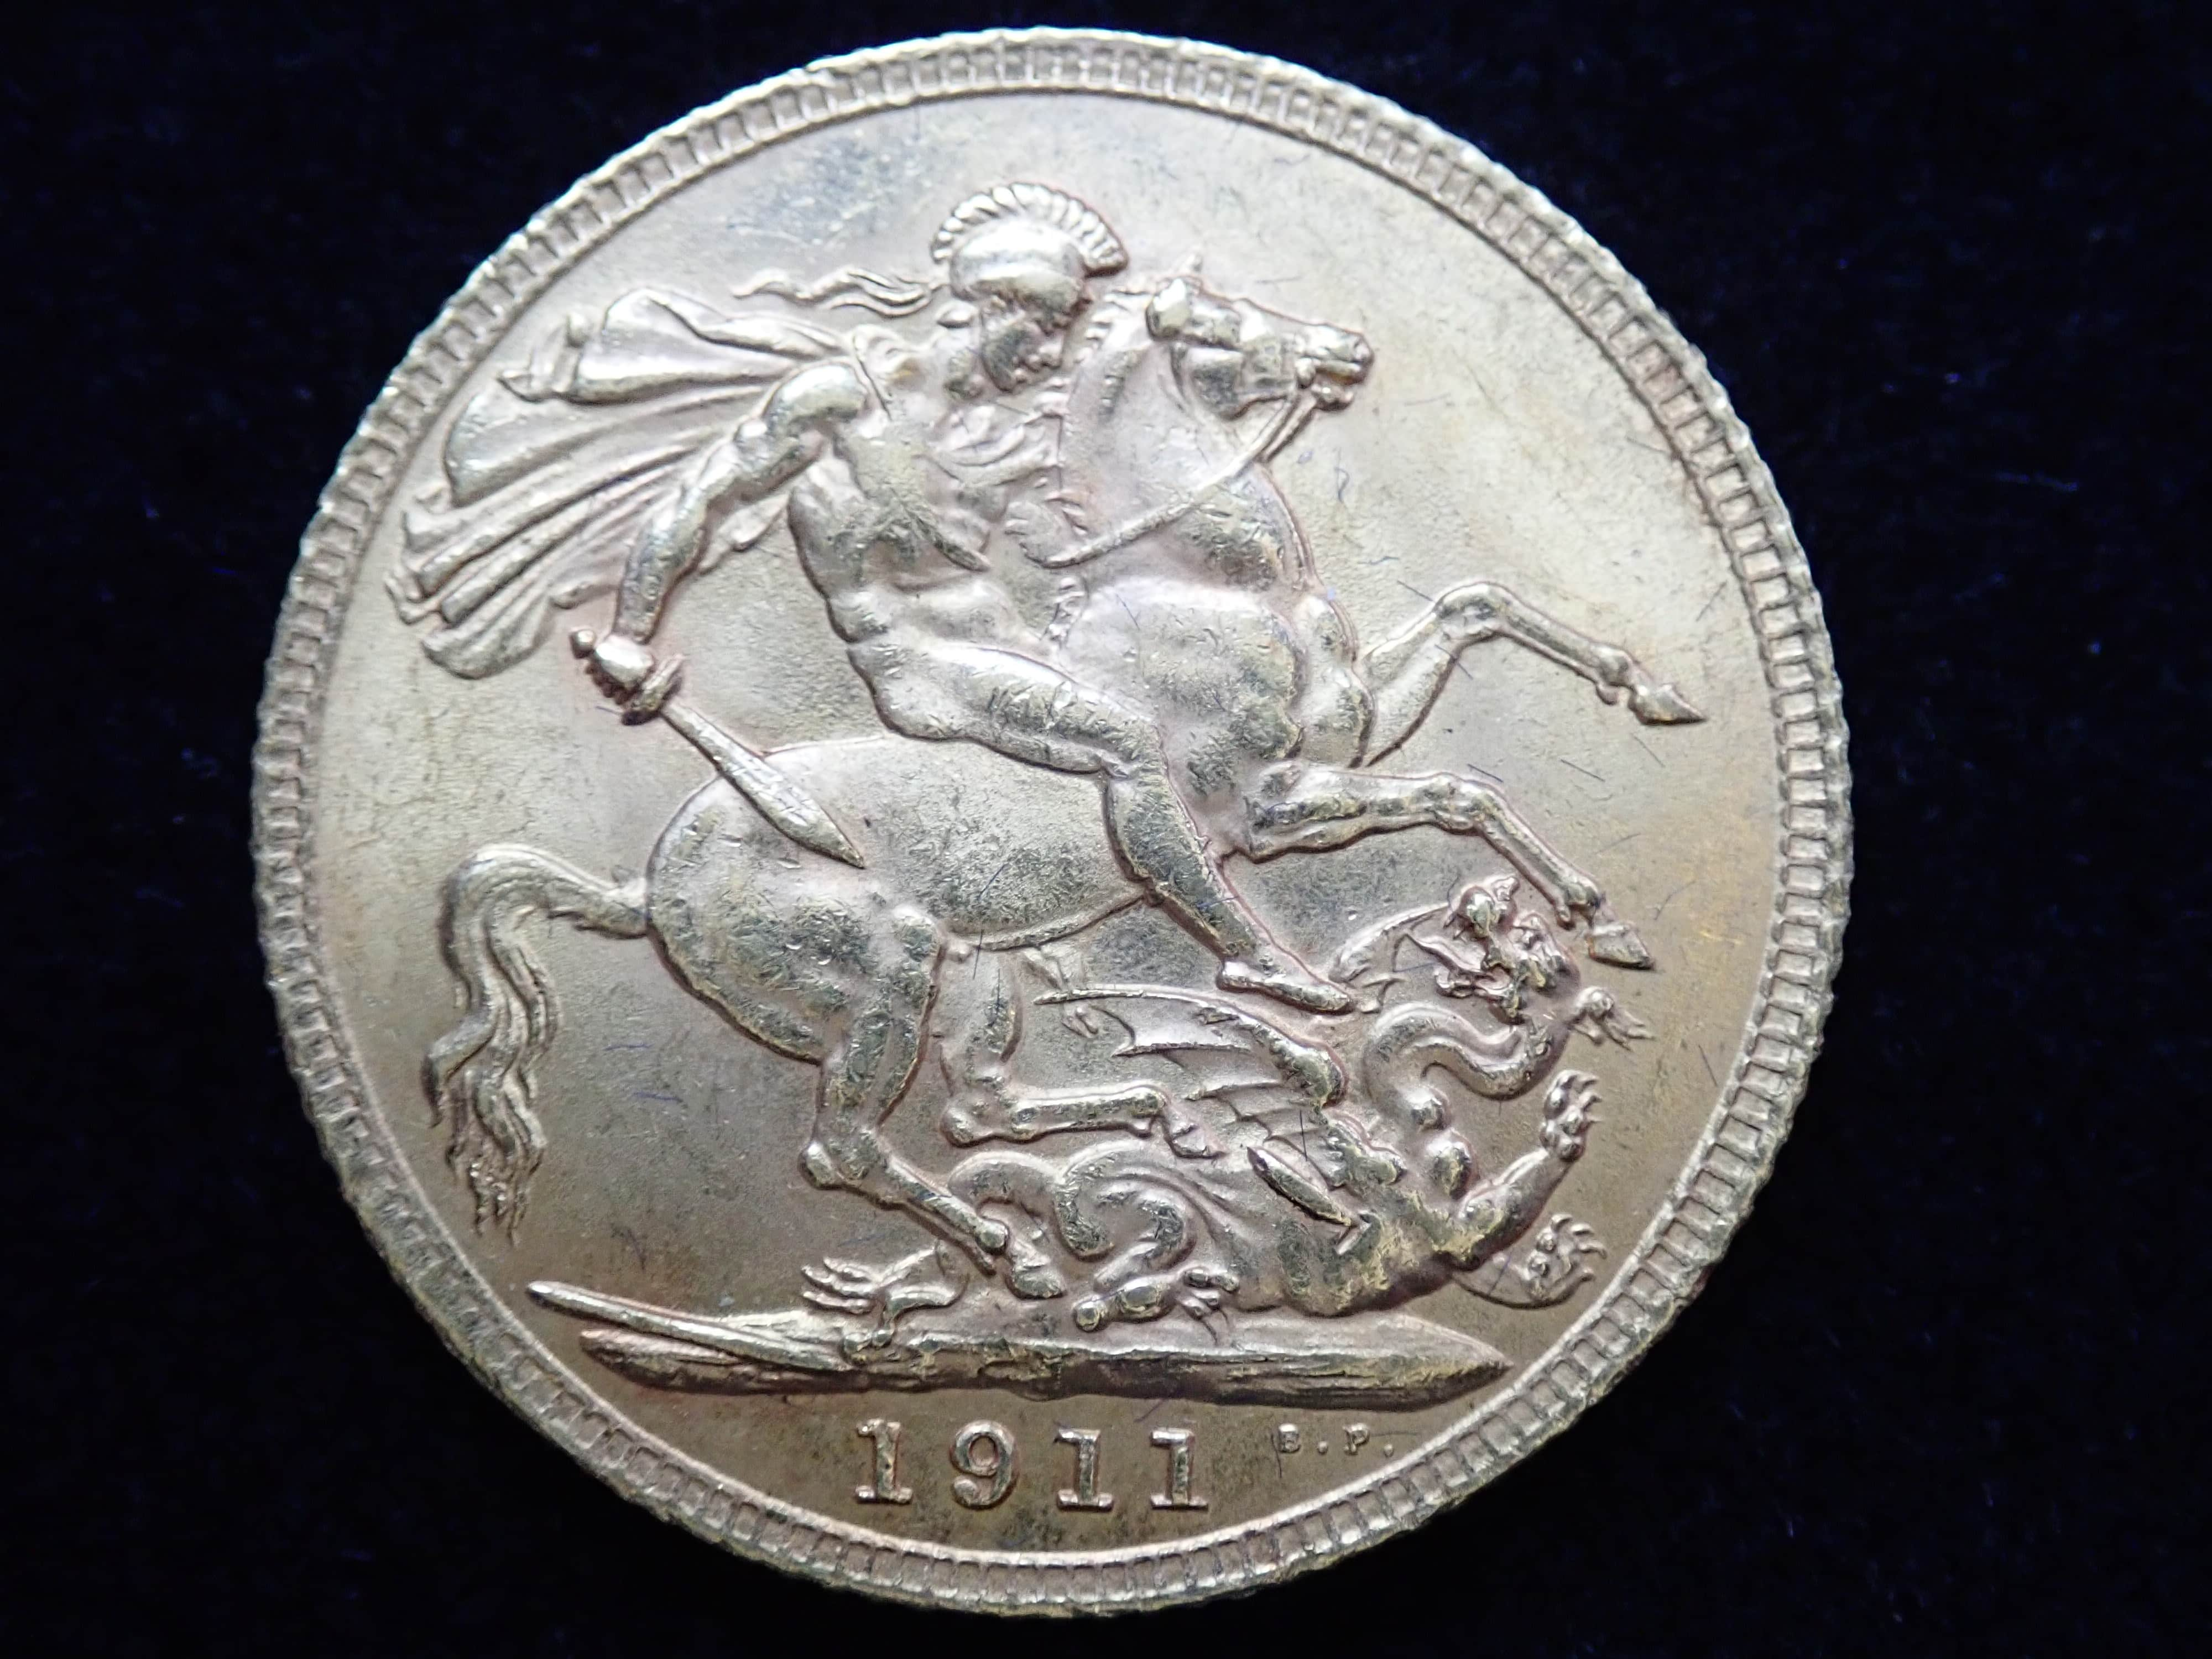 AA000812 - 1911 Gold Full Sovereign Coin - King George V- London Mint #355